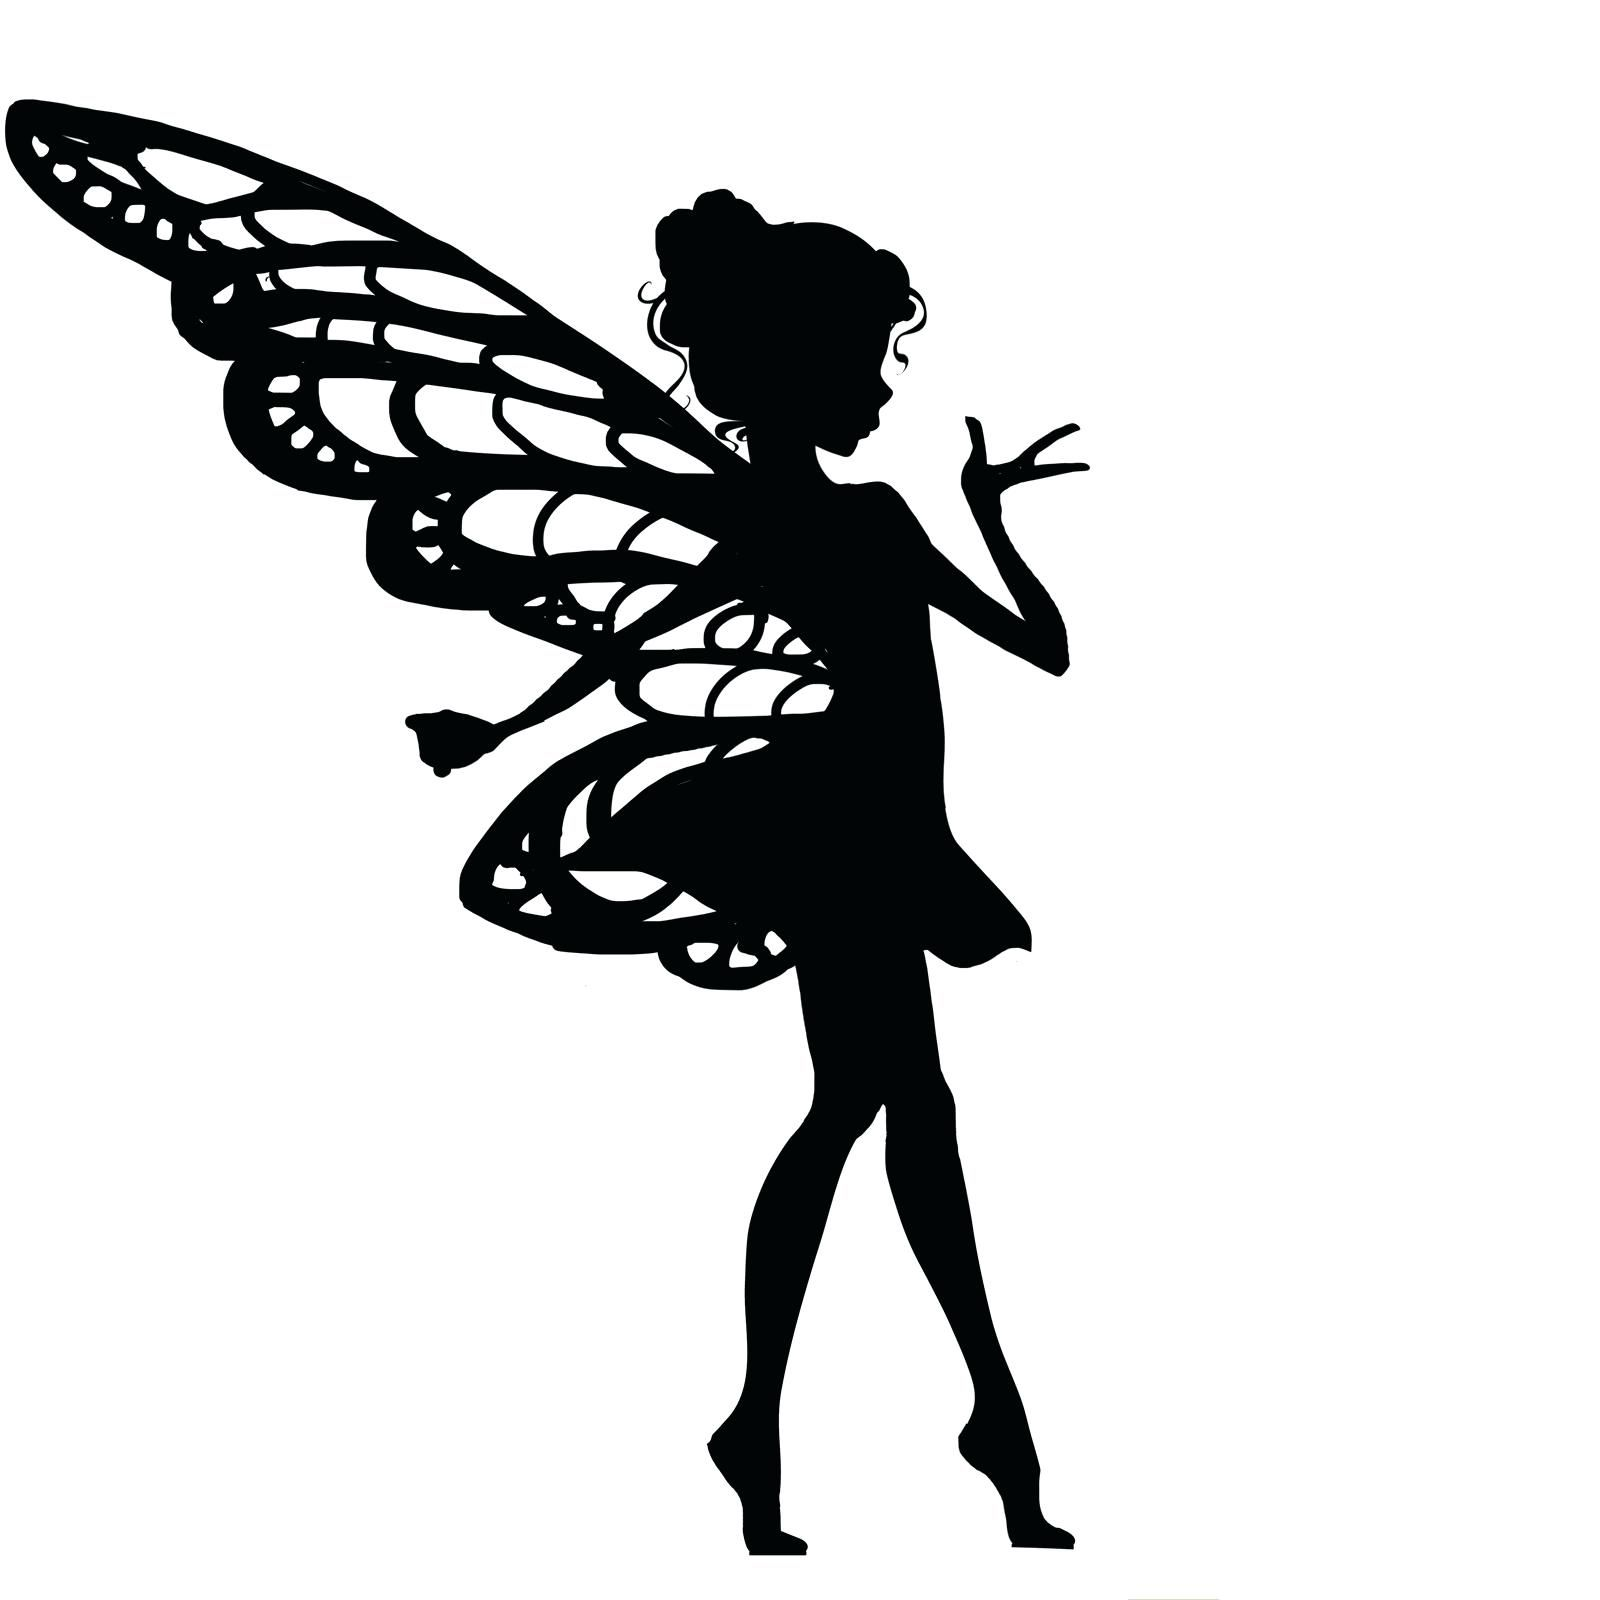 photo about Fairy Silhouette Printable referred to as printable: Printable Fairy Silhouette  Fairie Gardens